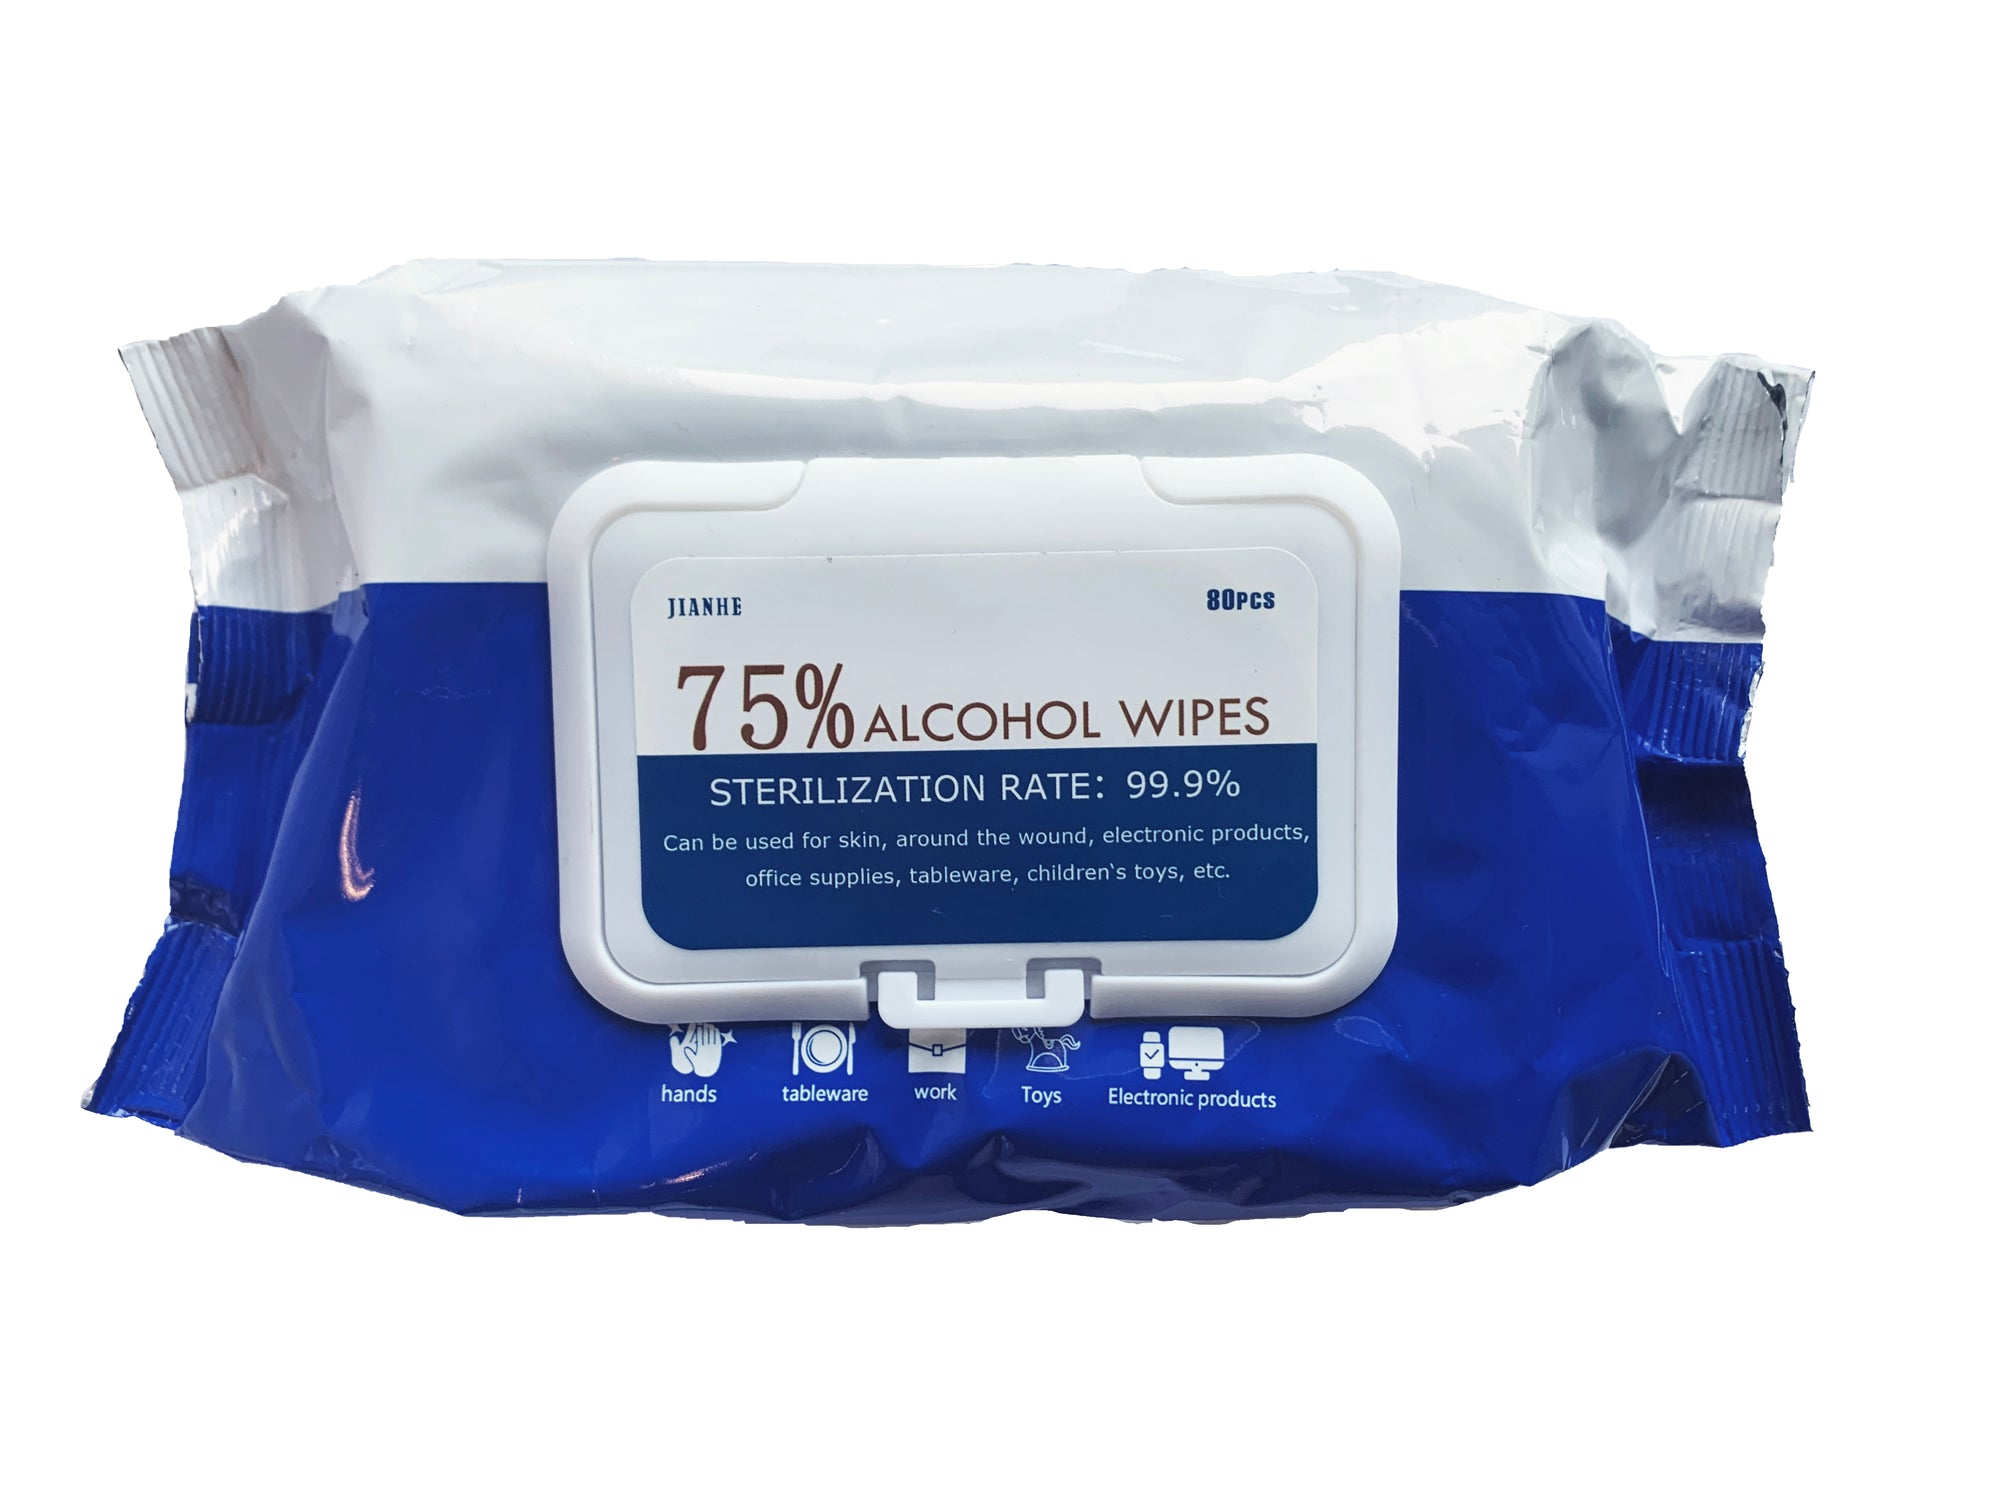 Jainhe 75% Alcohol Disinfectant Wipes